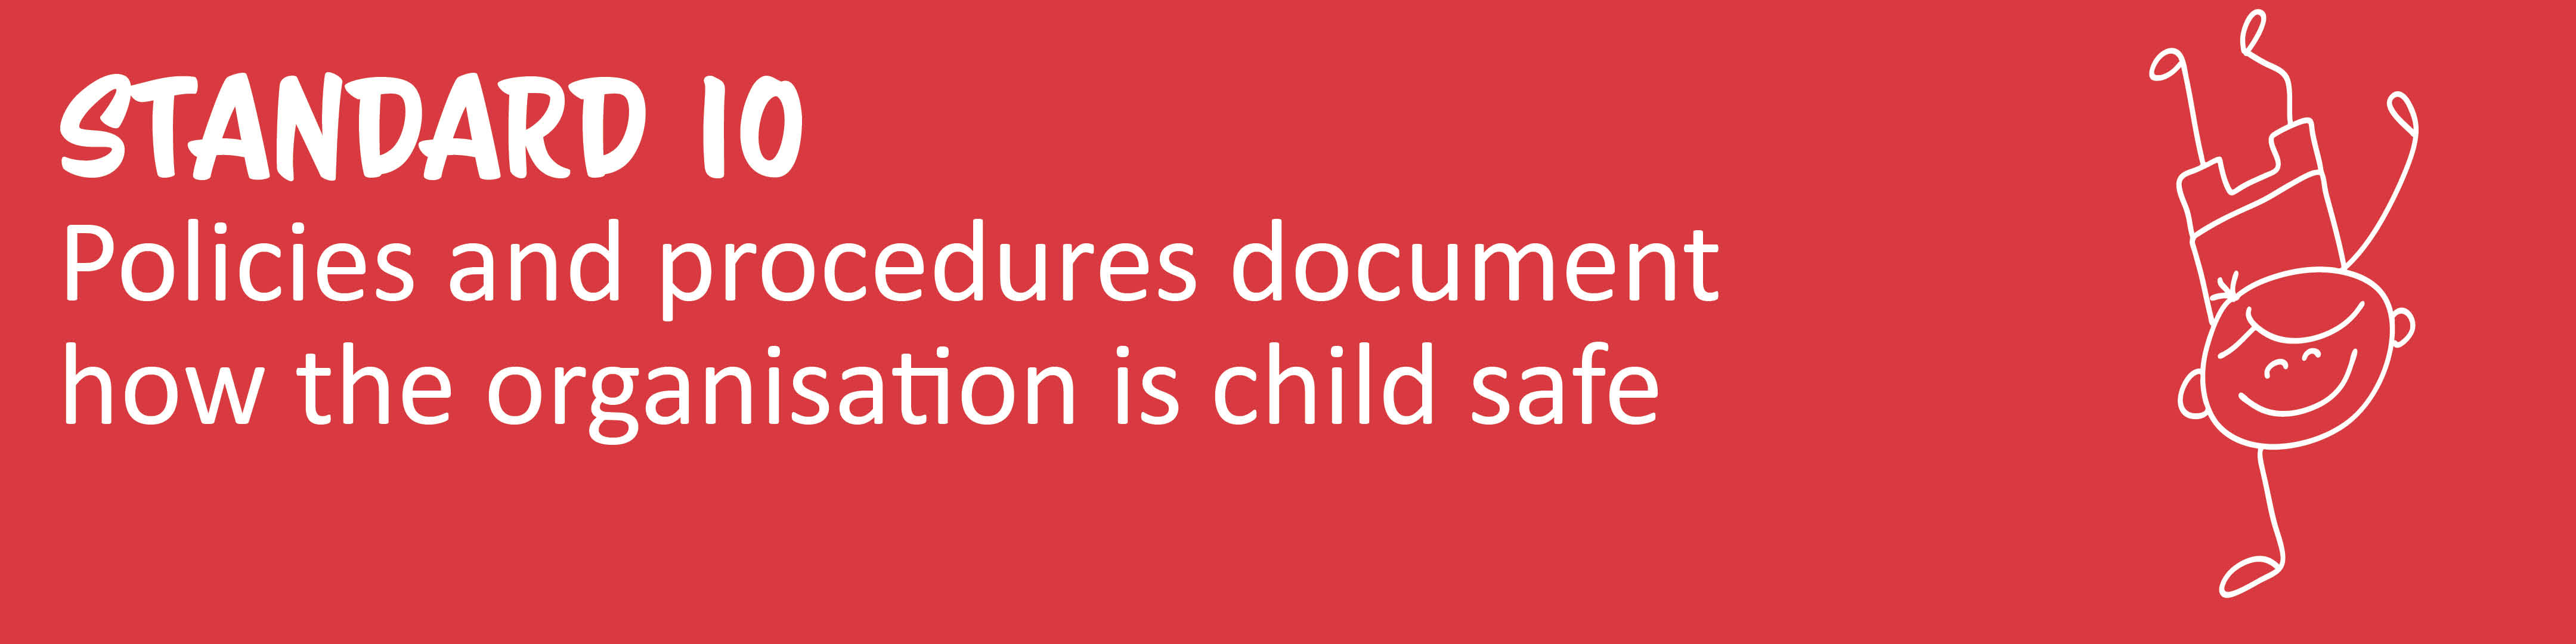 Child Safe Standard 10: Policies and Procedures document how the organization is child safe